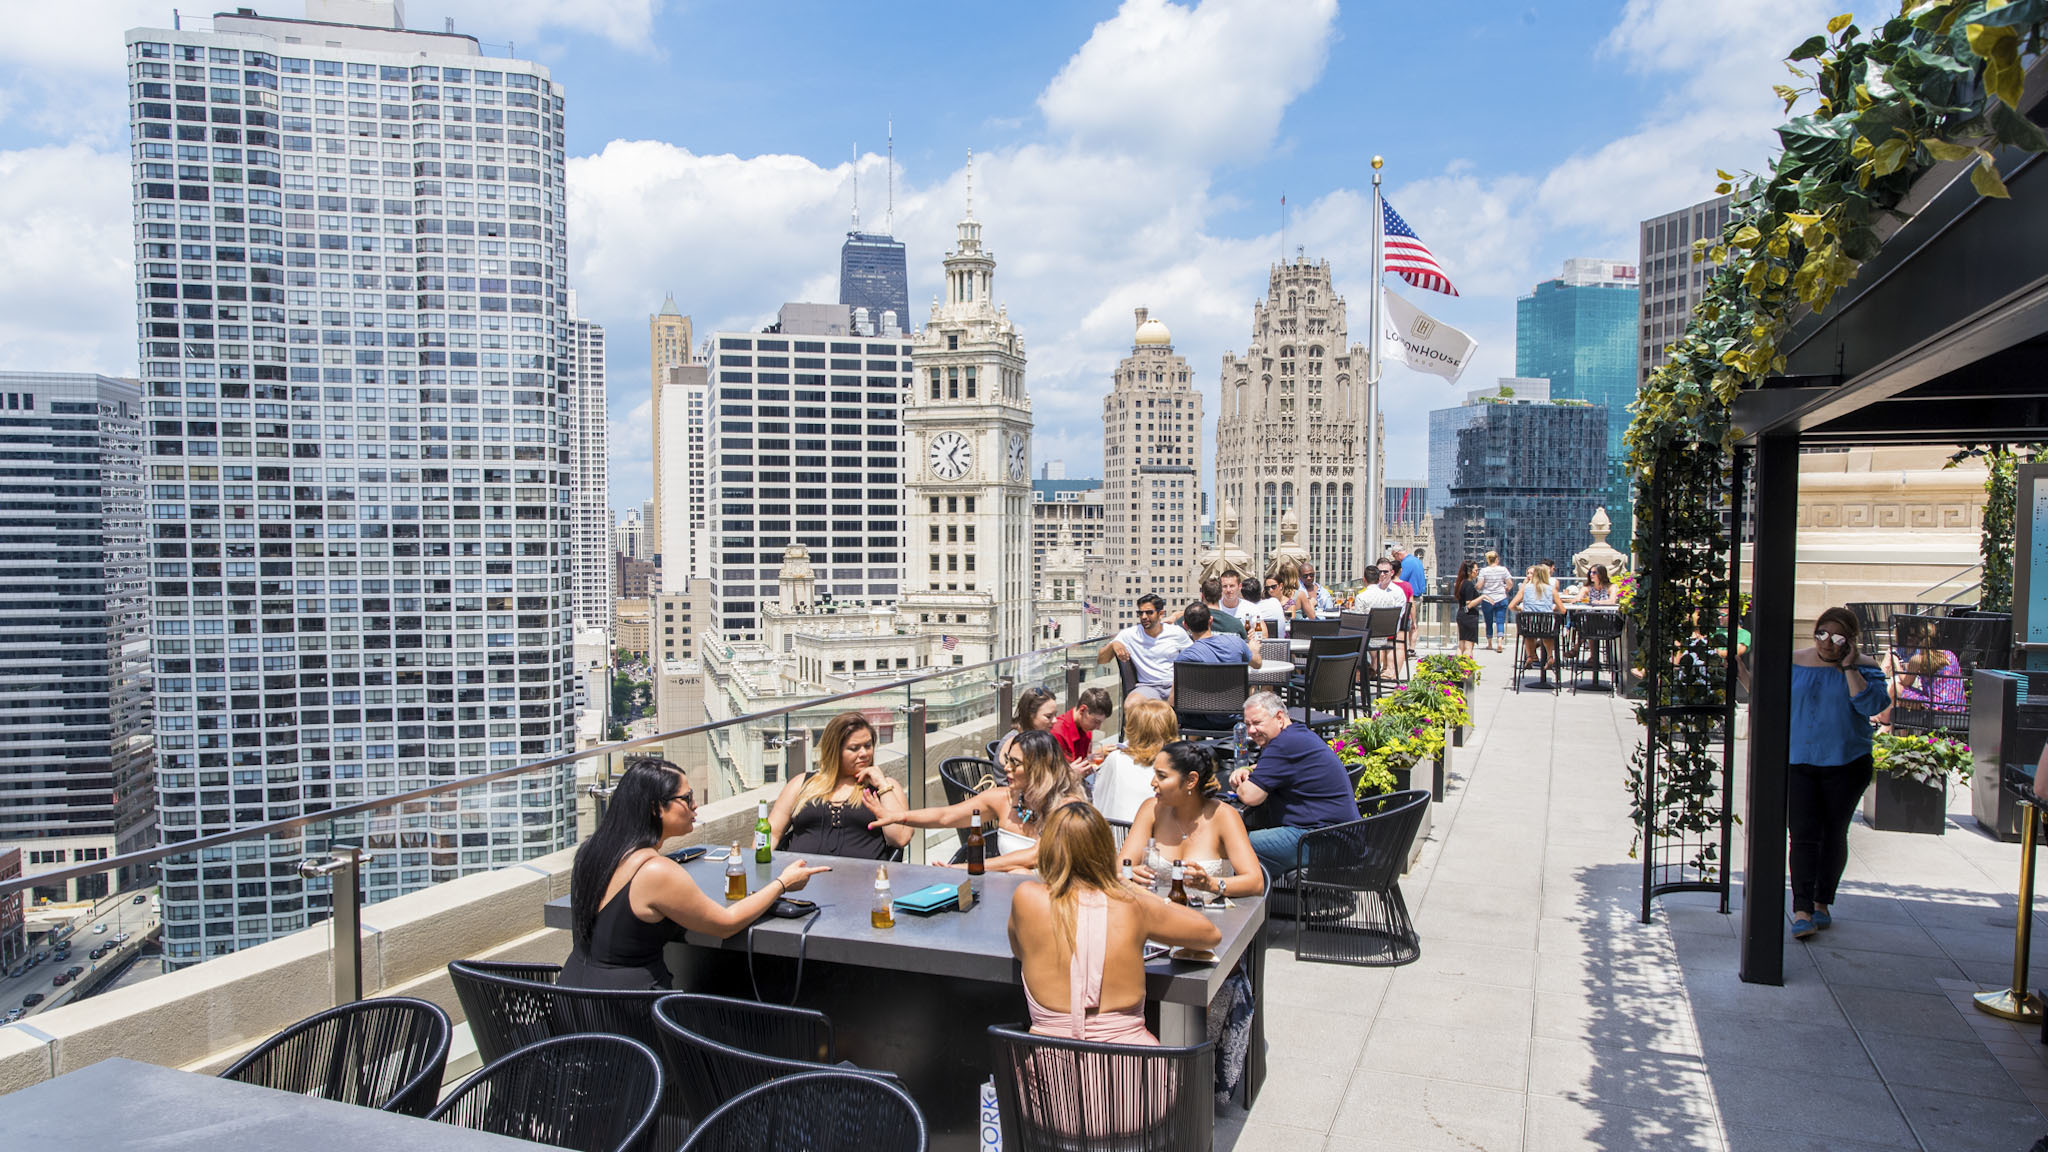 Chicago's weekend forecast calls for cool temps and cloud coverage